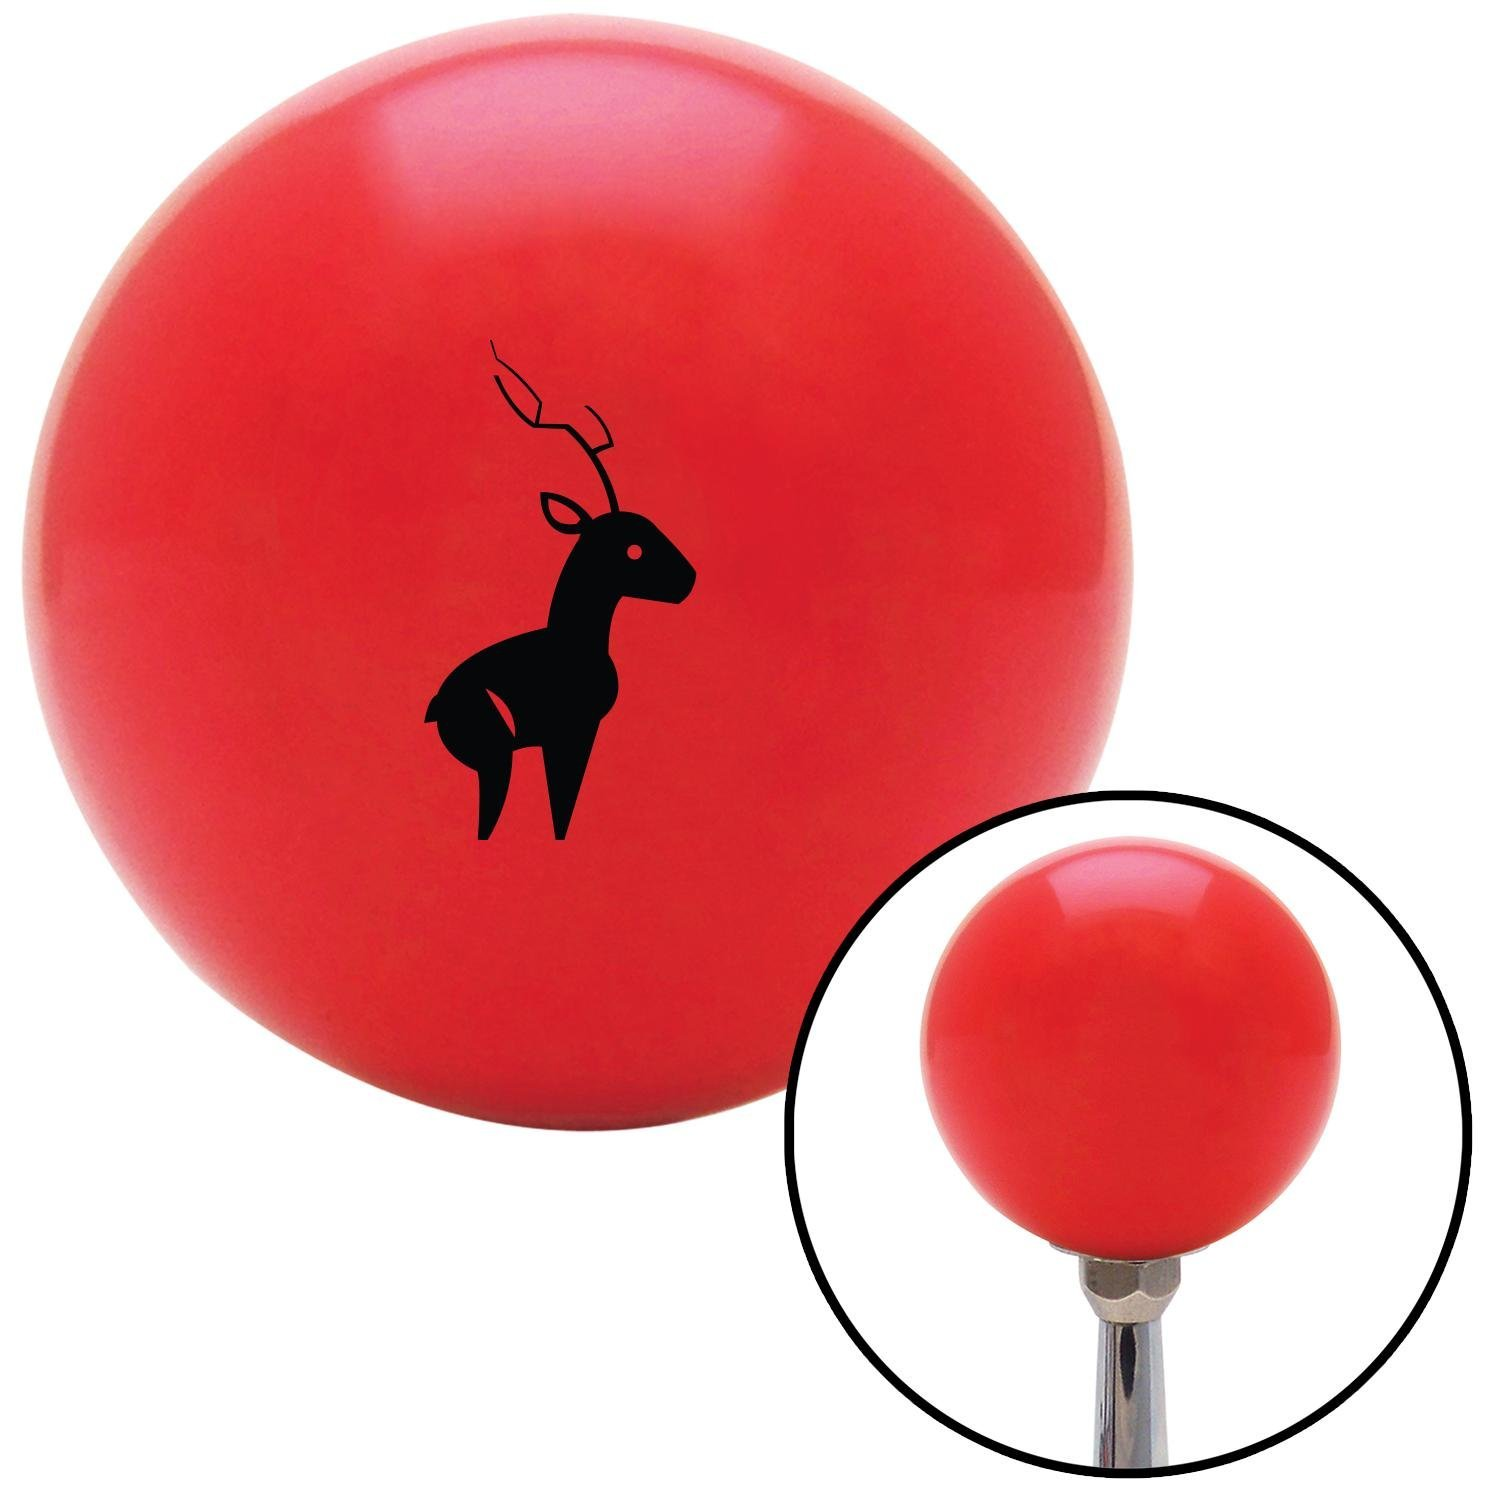 American Shifter 93609 Red Shift Knob with M16 x 1.5 Insert Black Deer